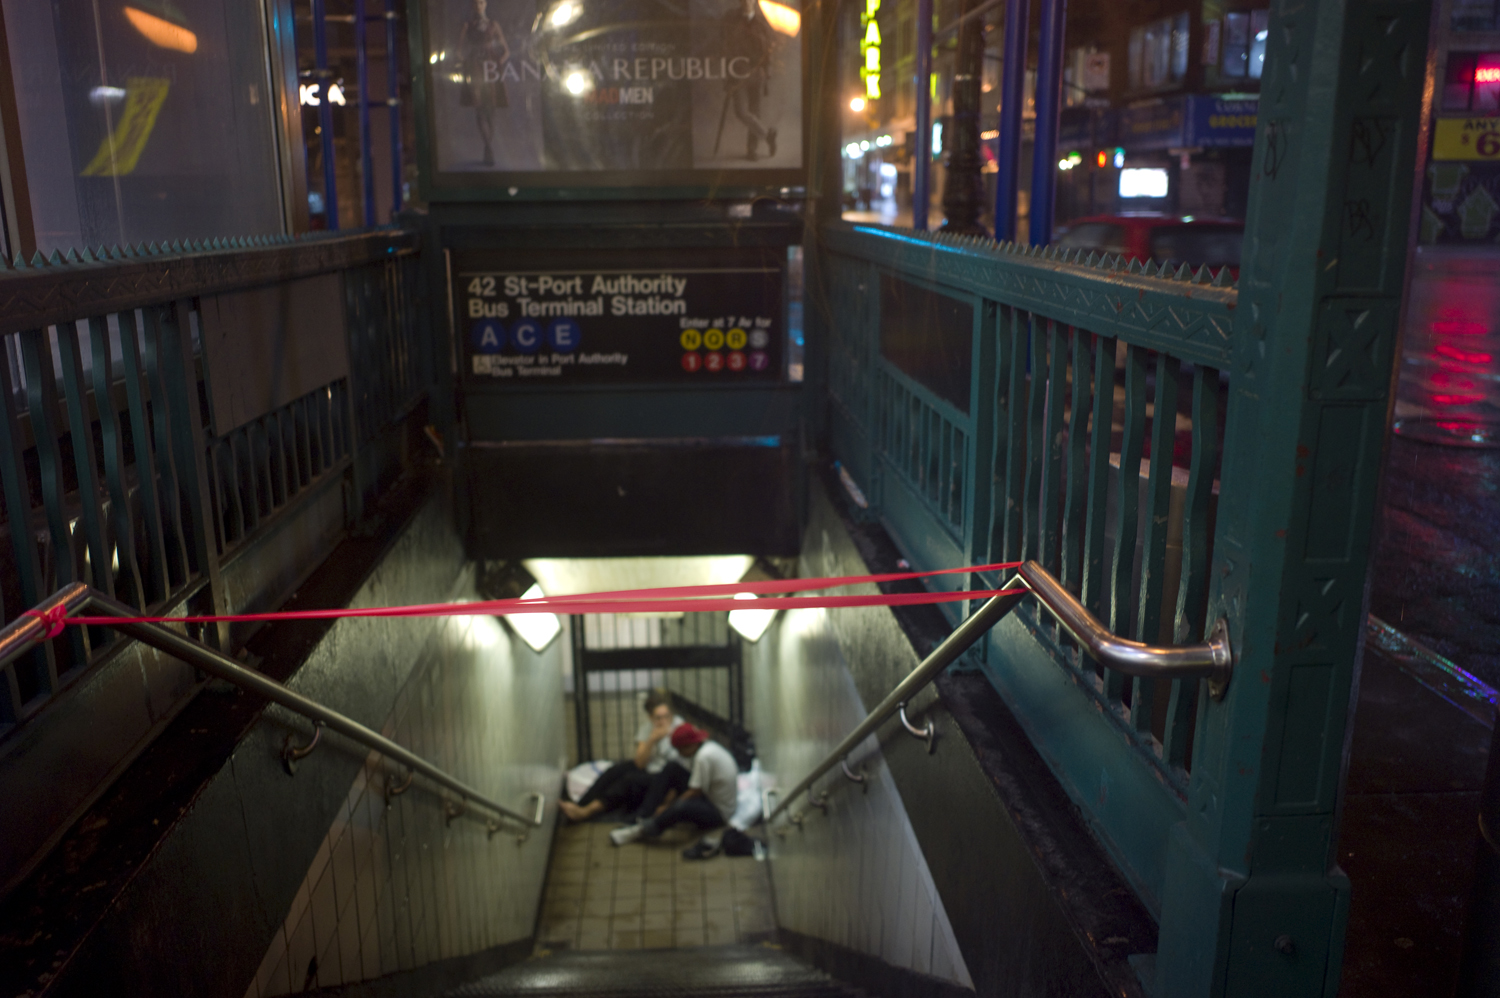 August 27, 2011, New York, NY. Homeless New Yorkers sleeping in a subway entrance near Times Square.